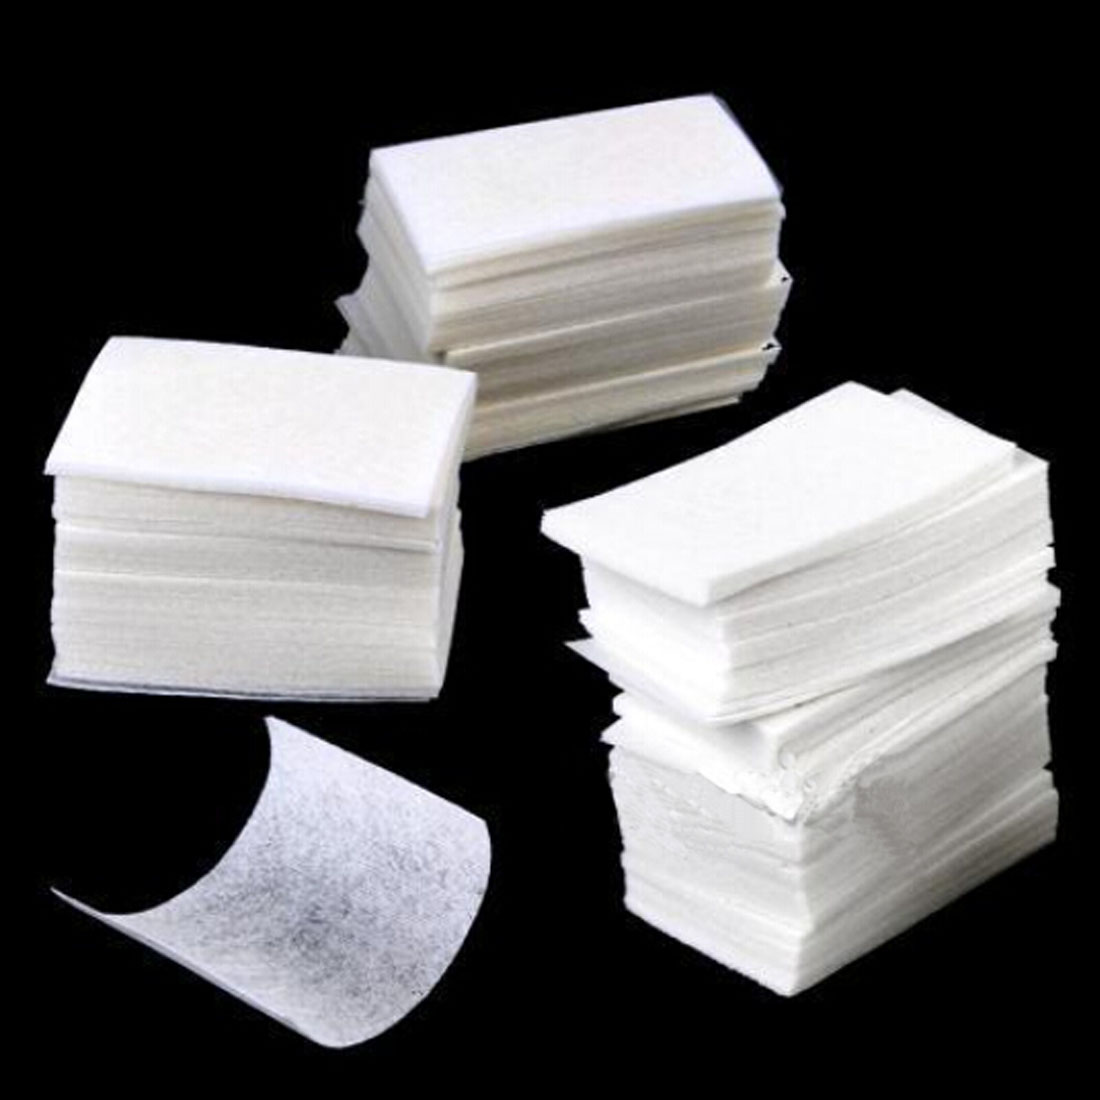 400pcs/set Nail Art wipe Manicure Polish gel nail Wipes Cotton High Quality Lint Cotton Pads Paper Acrylic Gel Tips horoz встраиваемый светодиодный светильник horoz amanda 6 hl6754l 6w 6000k матхром 016 017 0006 hrz00000289